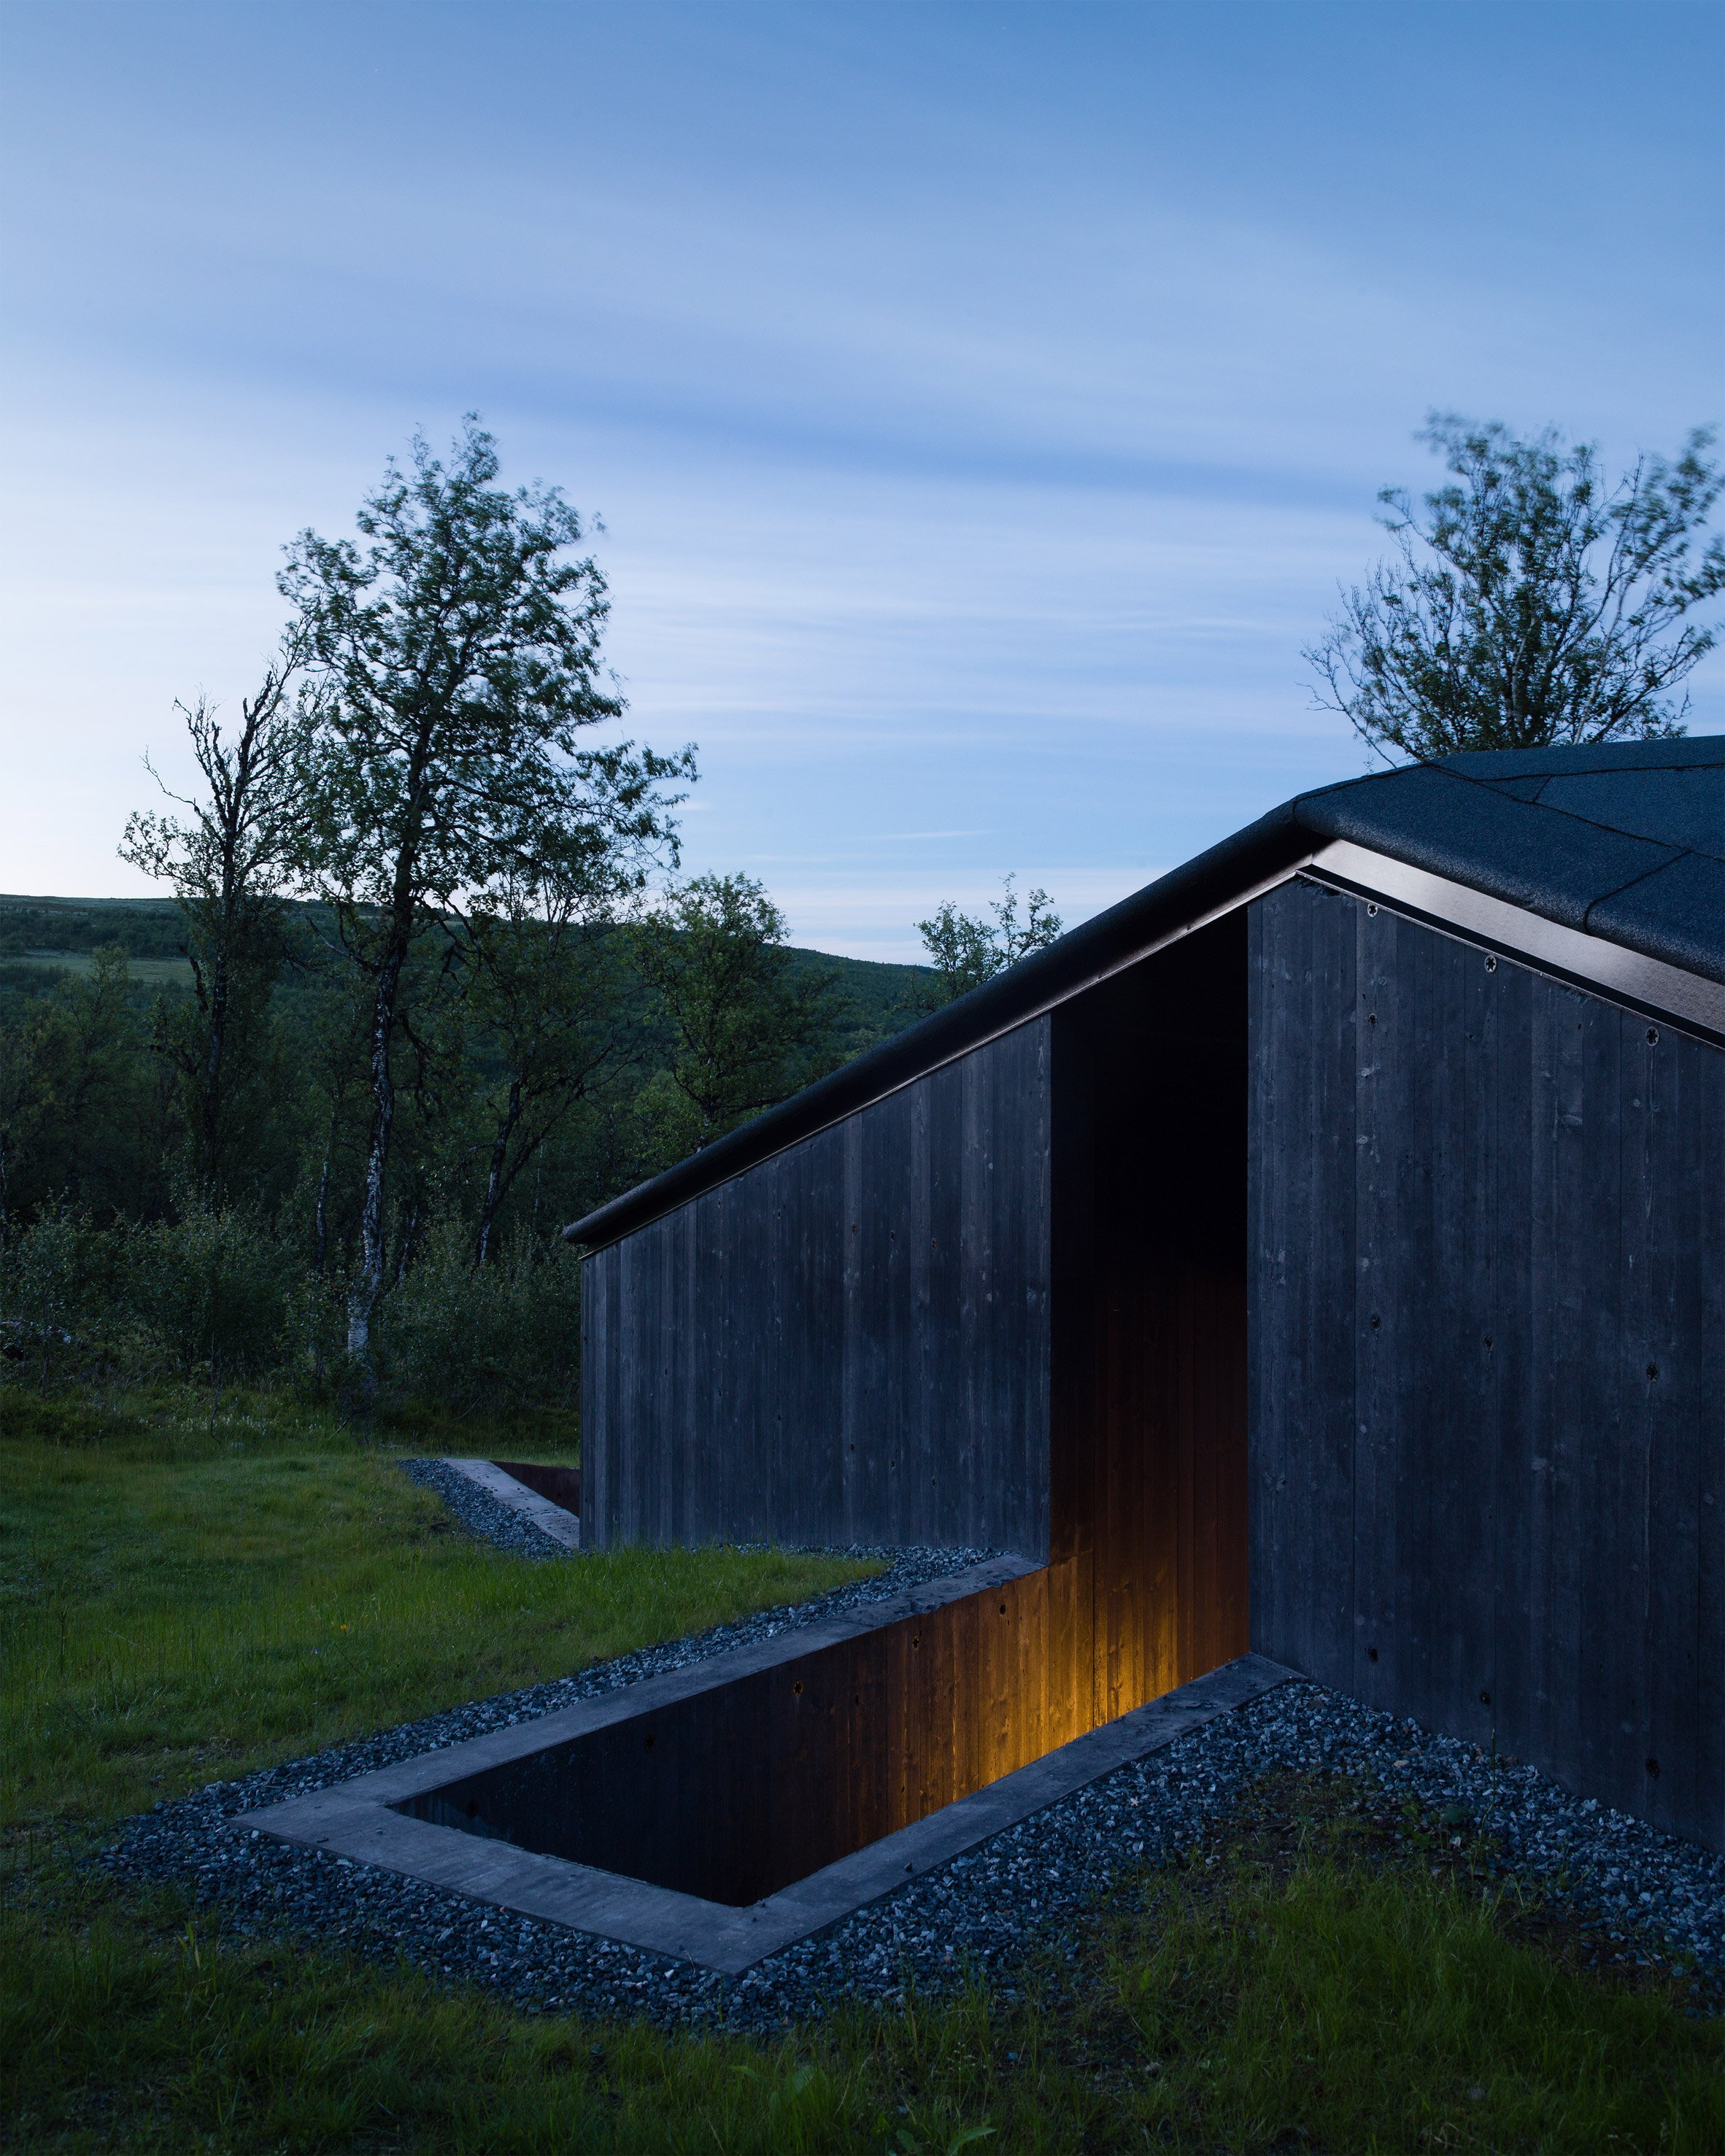 Lund Hagem's blackened timber cabin designed to withstand Norway's harsh winters